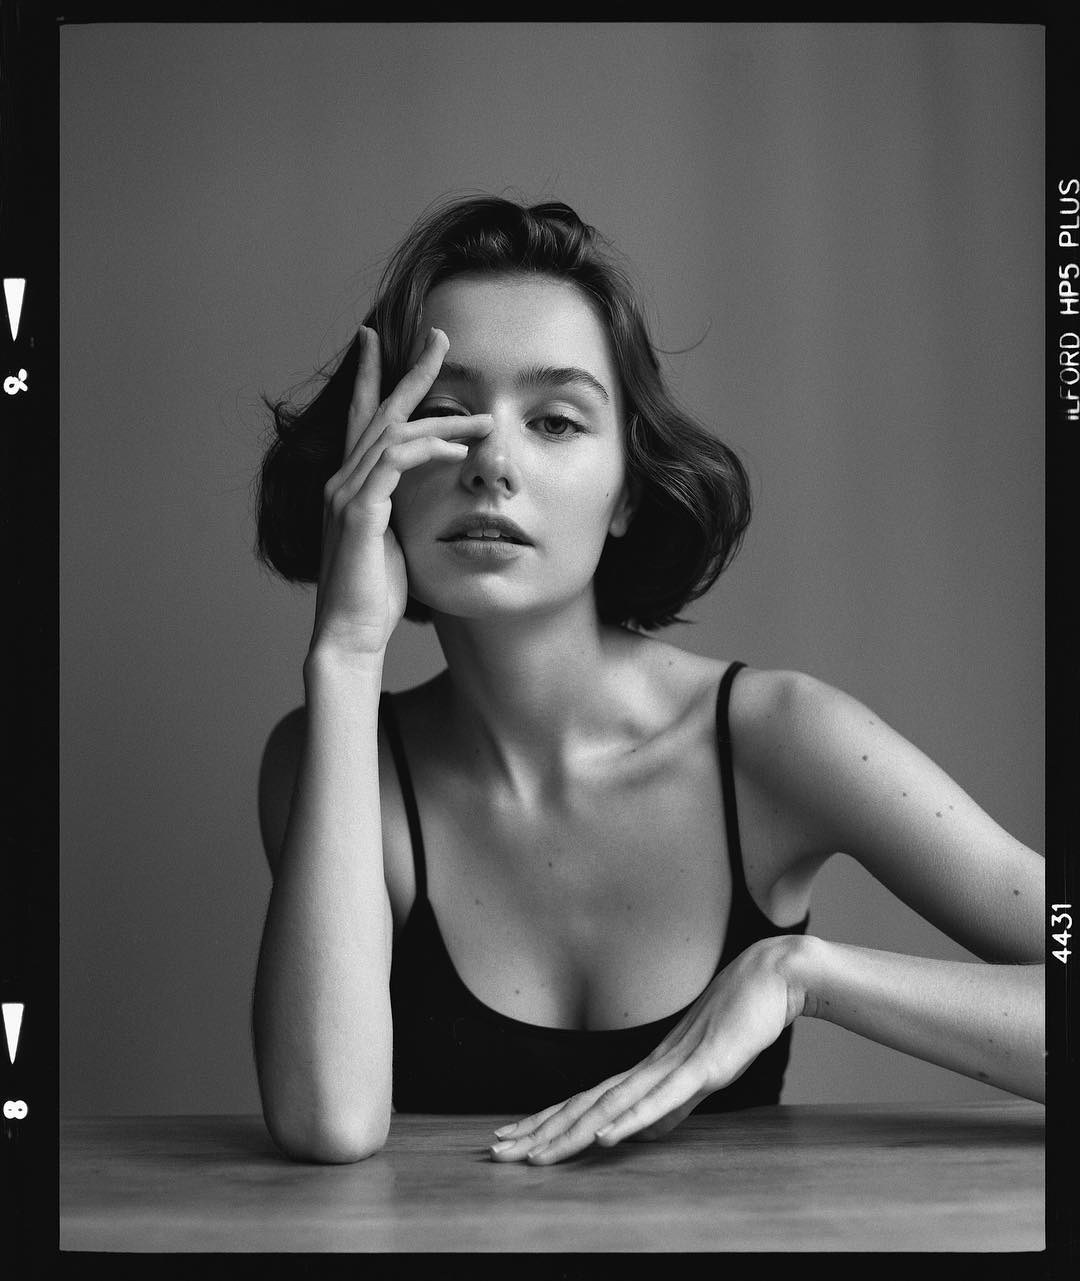 Gorgeous black and white portrait photography by jean marie franceschi